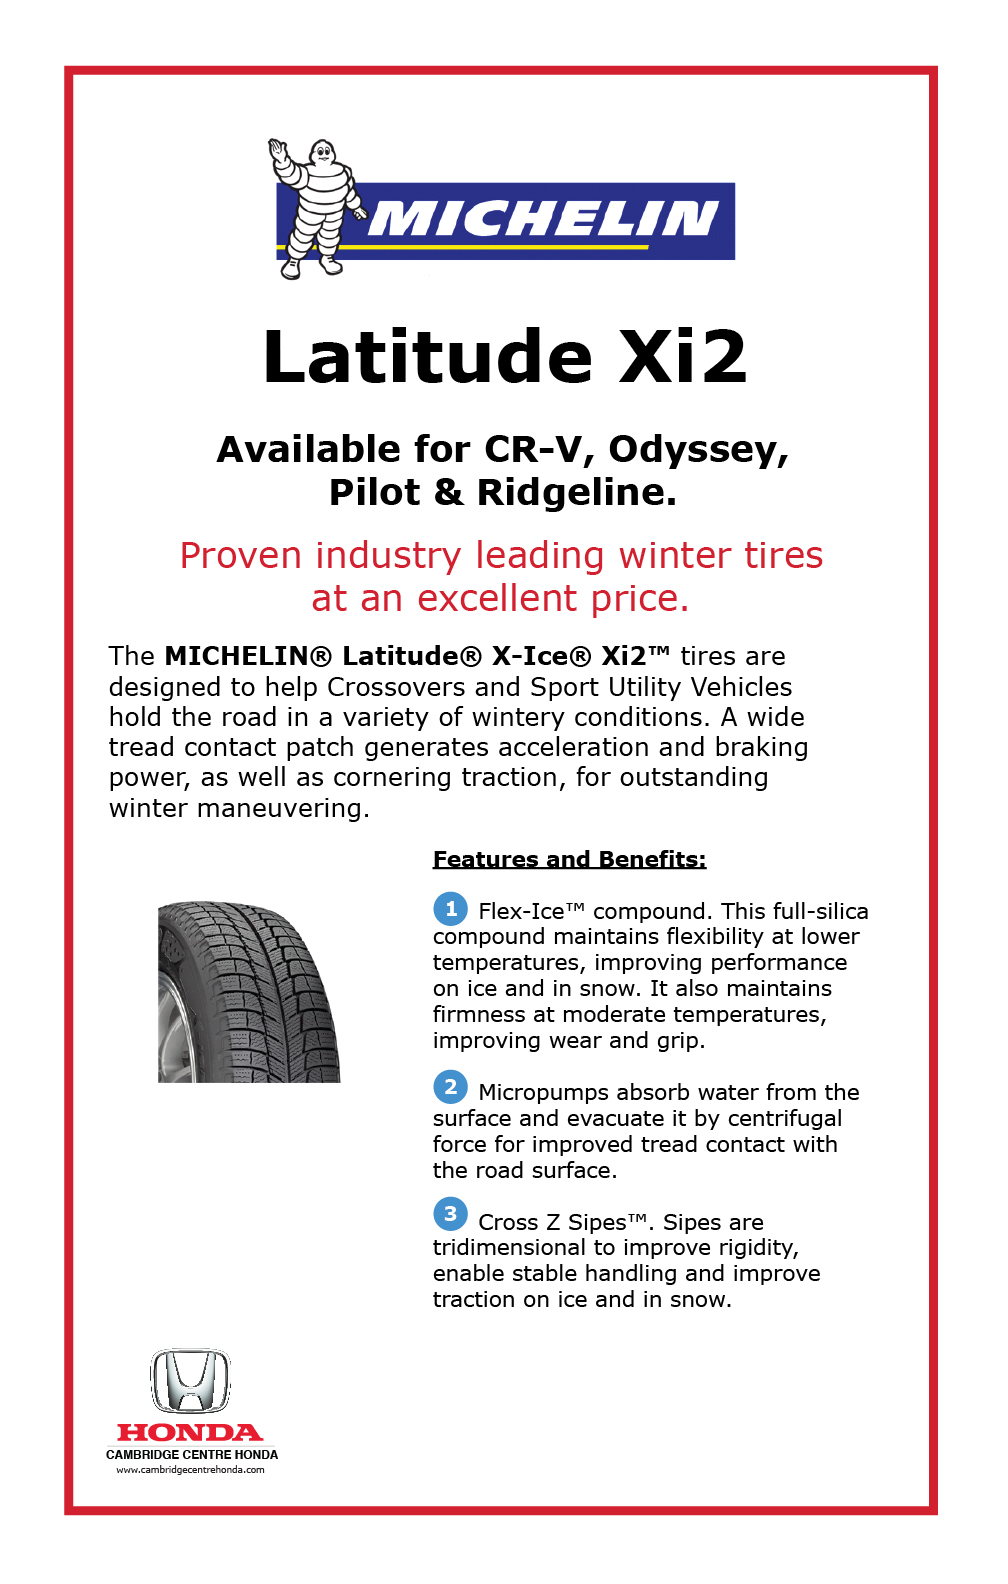 Michelin Latitude Xi2